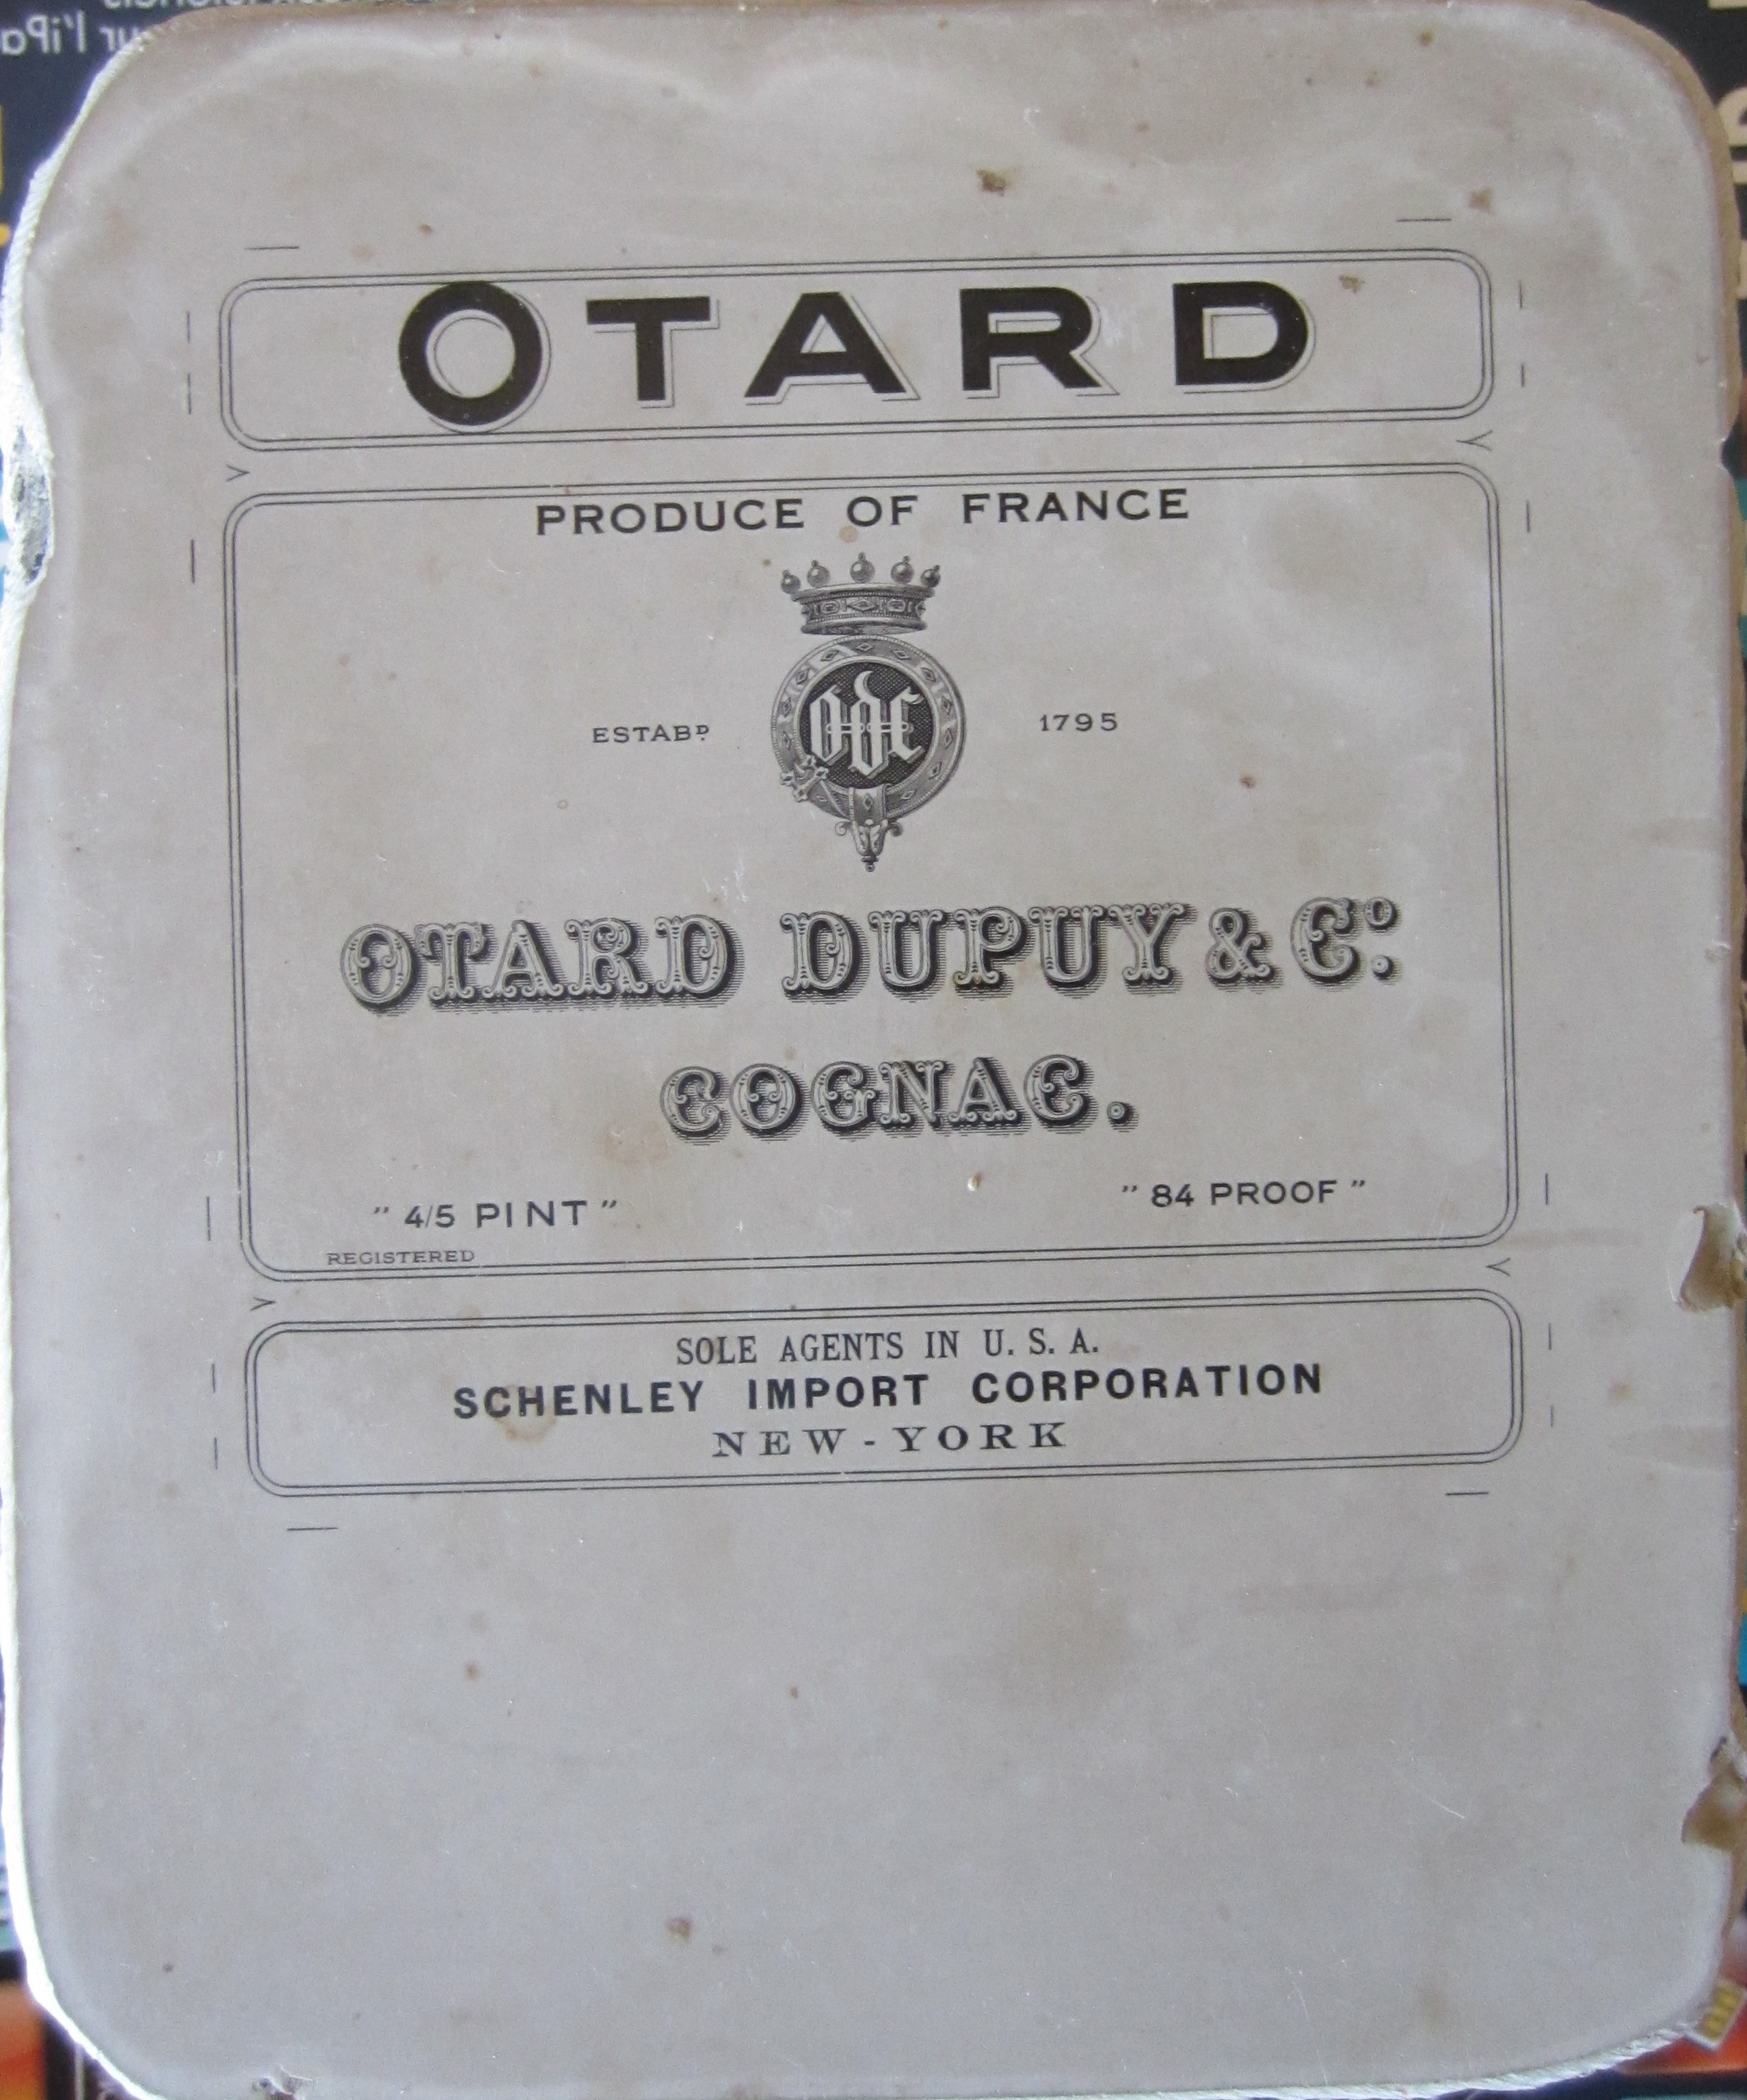 Reader has a Lithographic Stone for Cognac Otard Dupuy Label